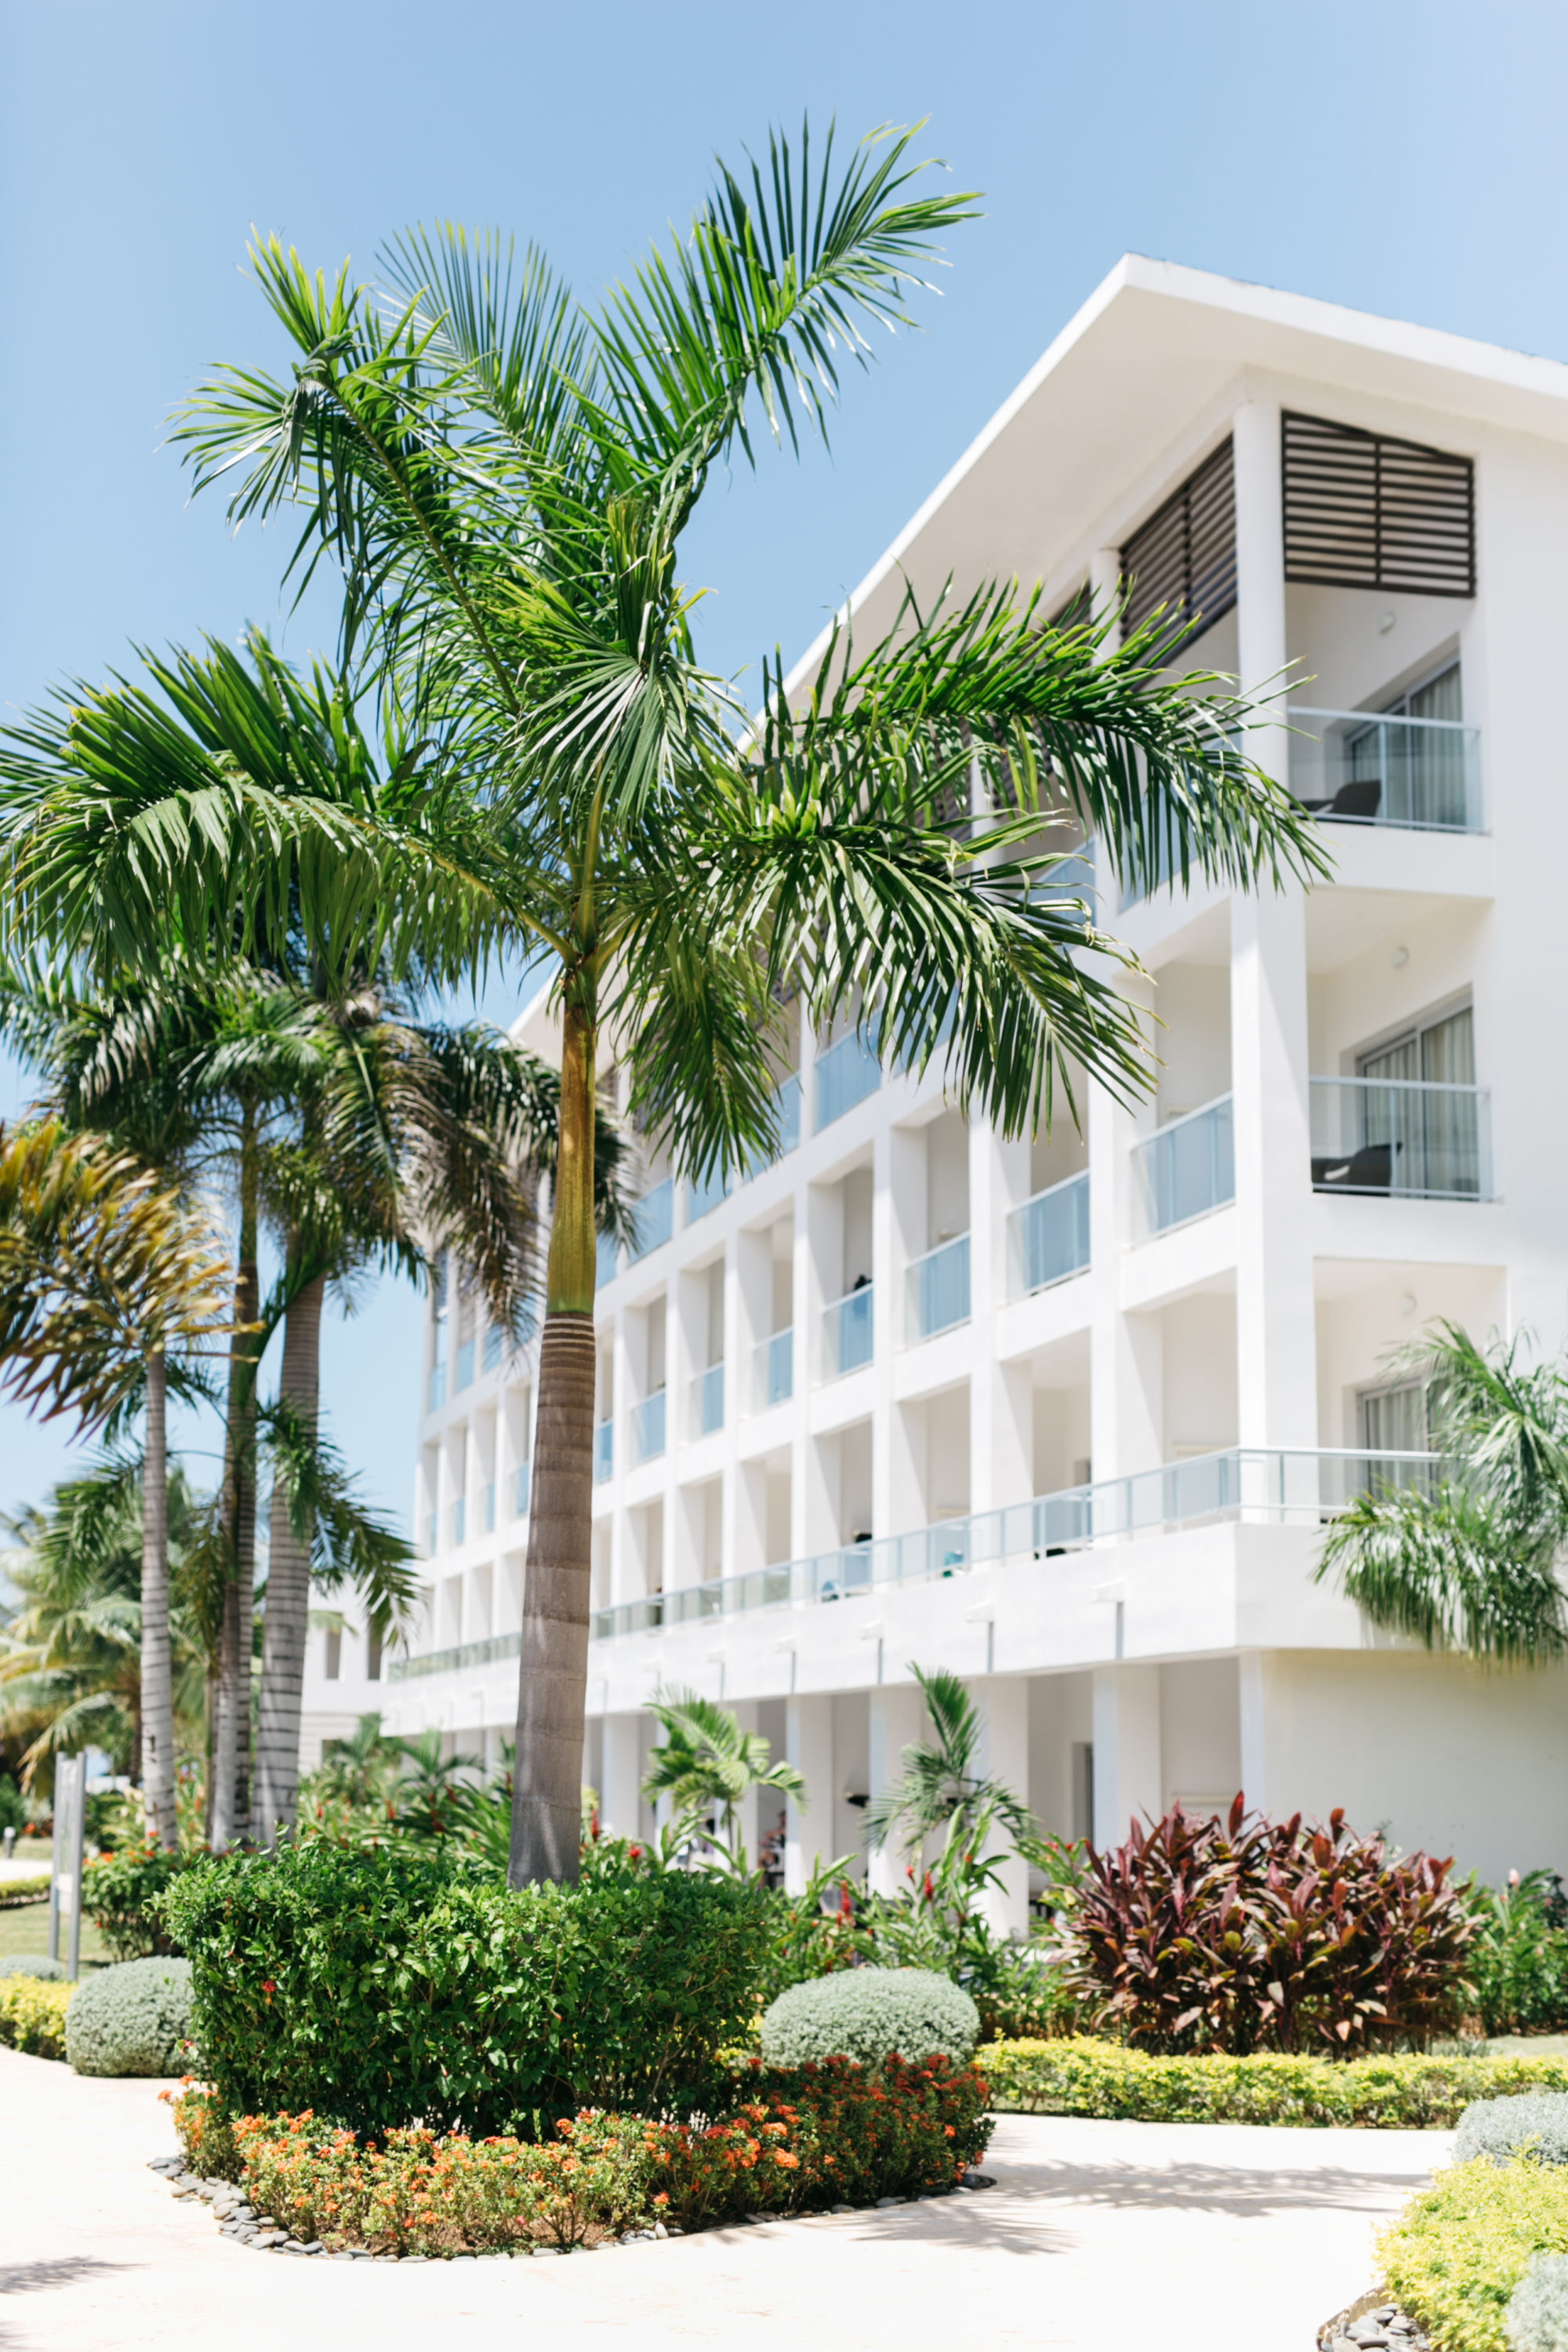 Royalton White Sands Resort in Montego Bay, Jamaica